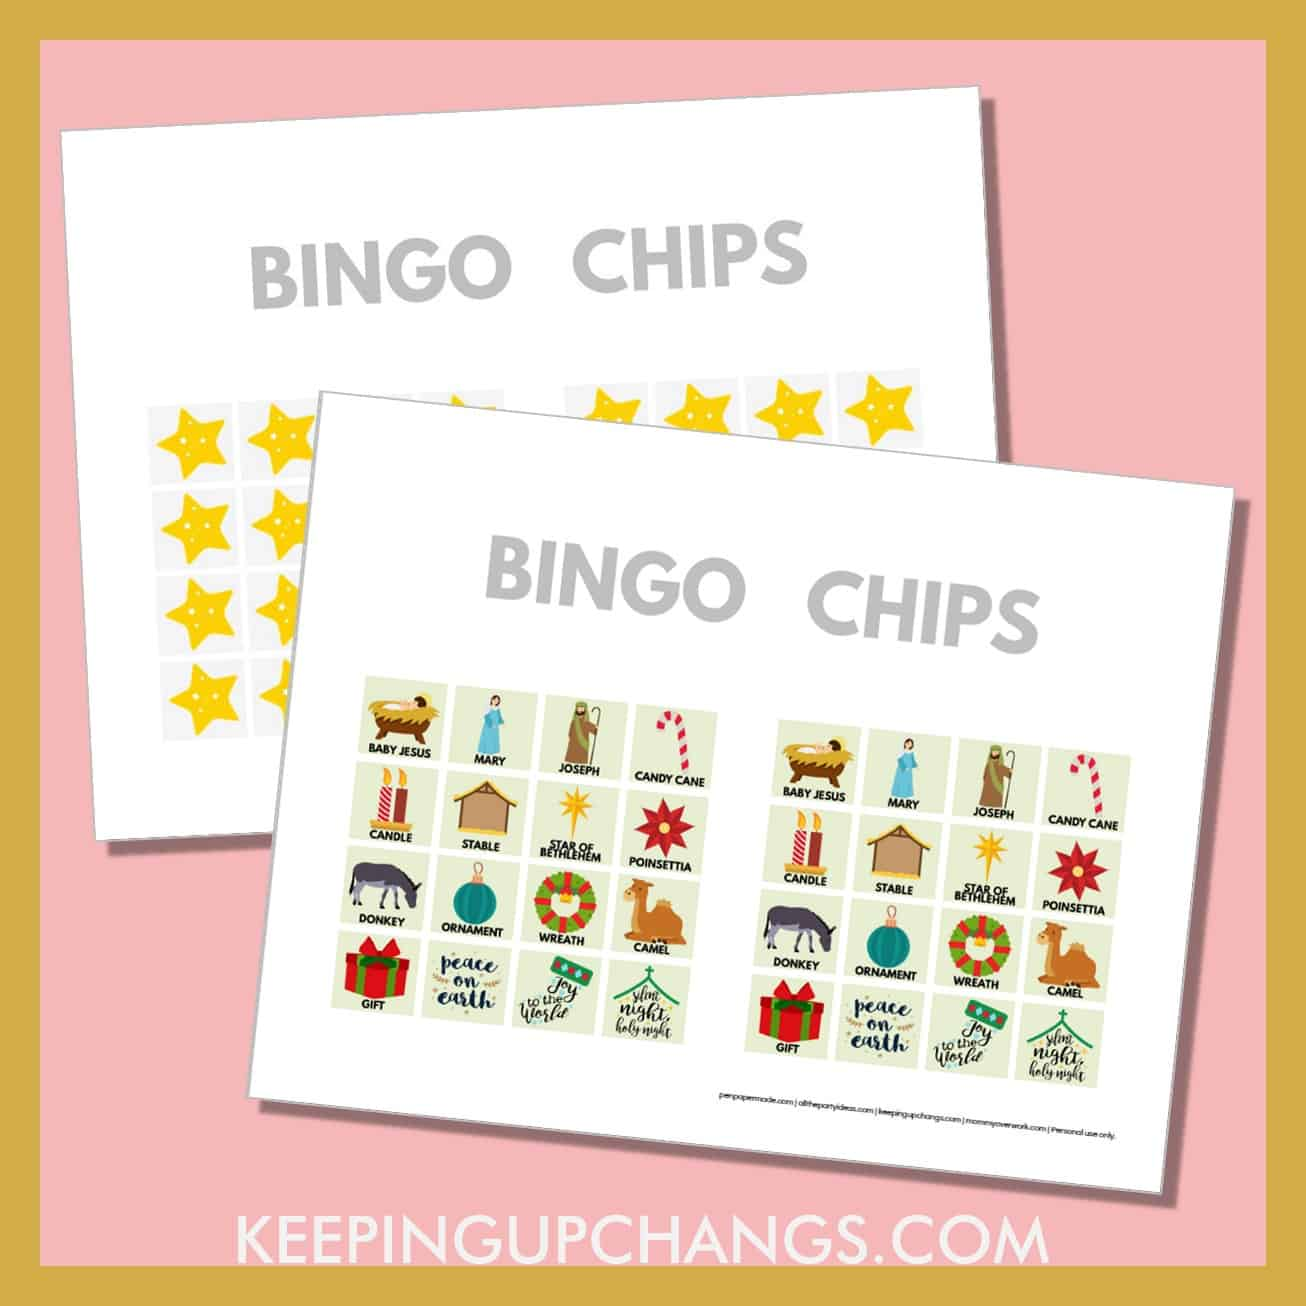 free bible nativity christmas bingo card 4x4 game chips, tokens, markers.